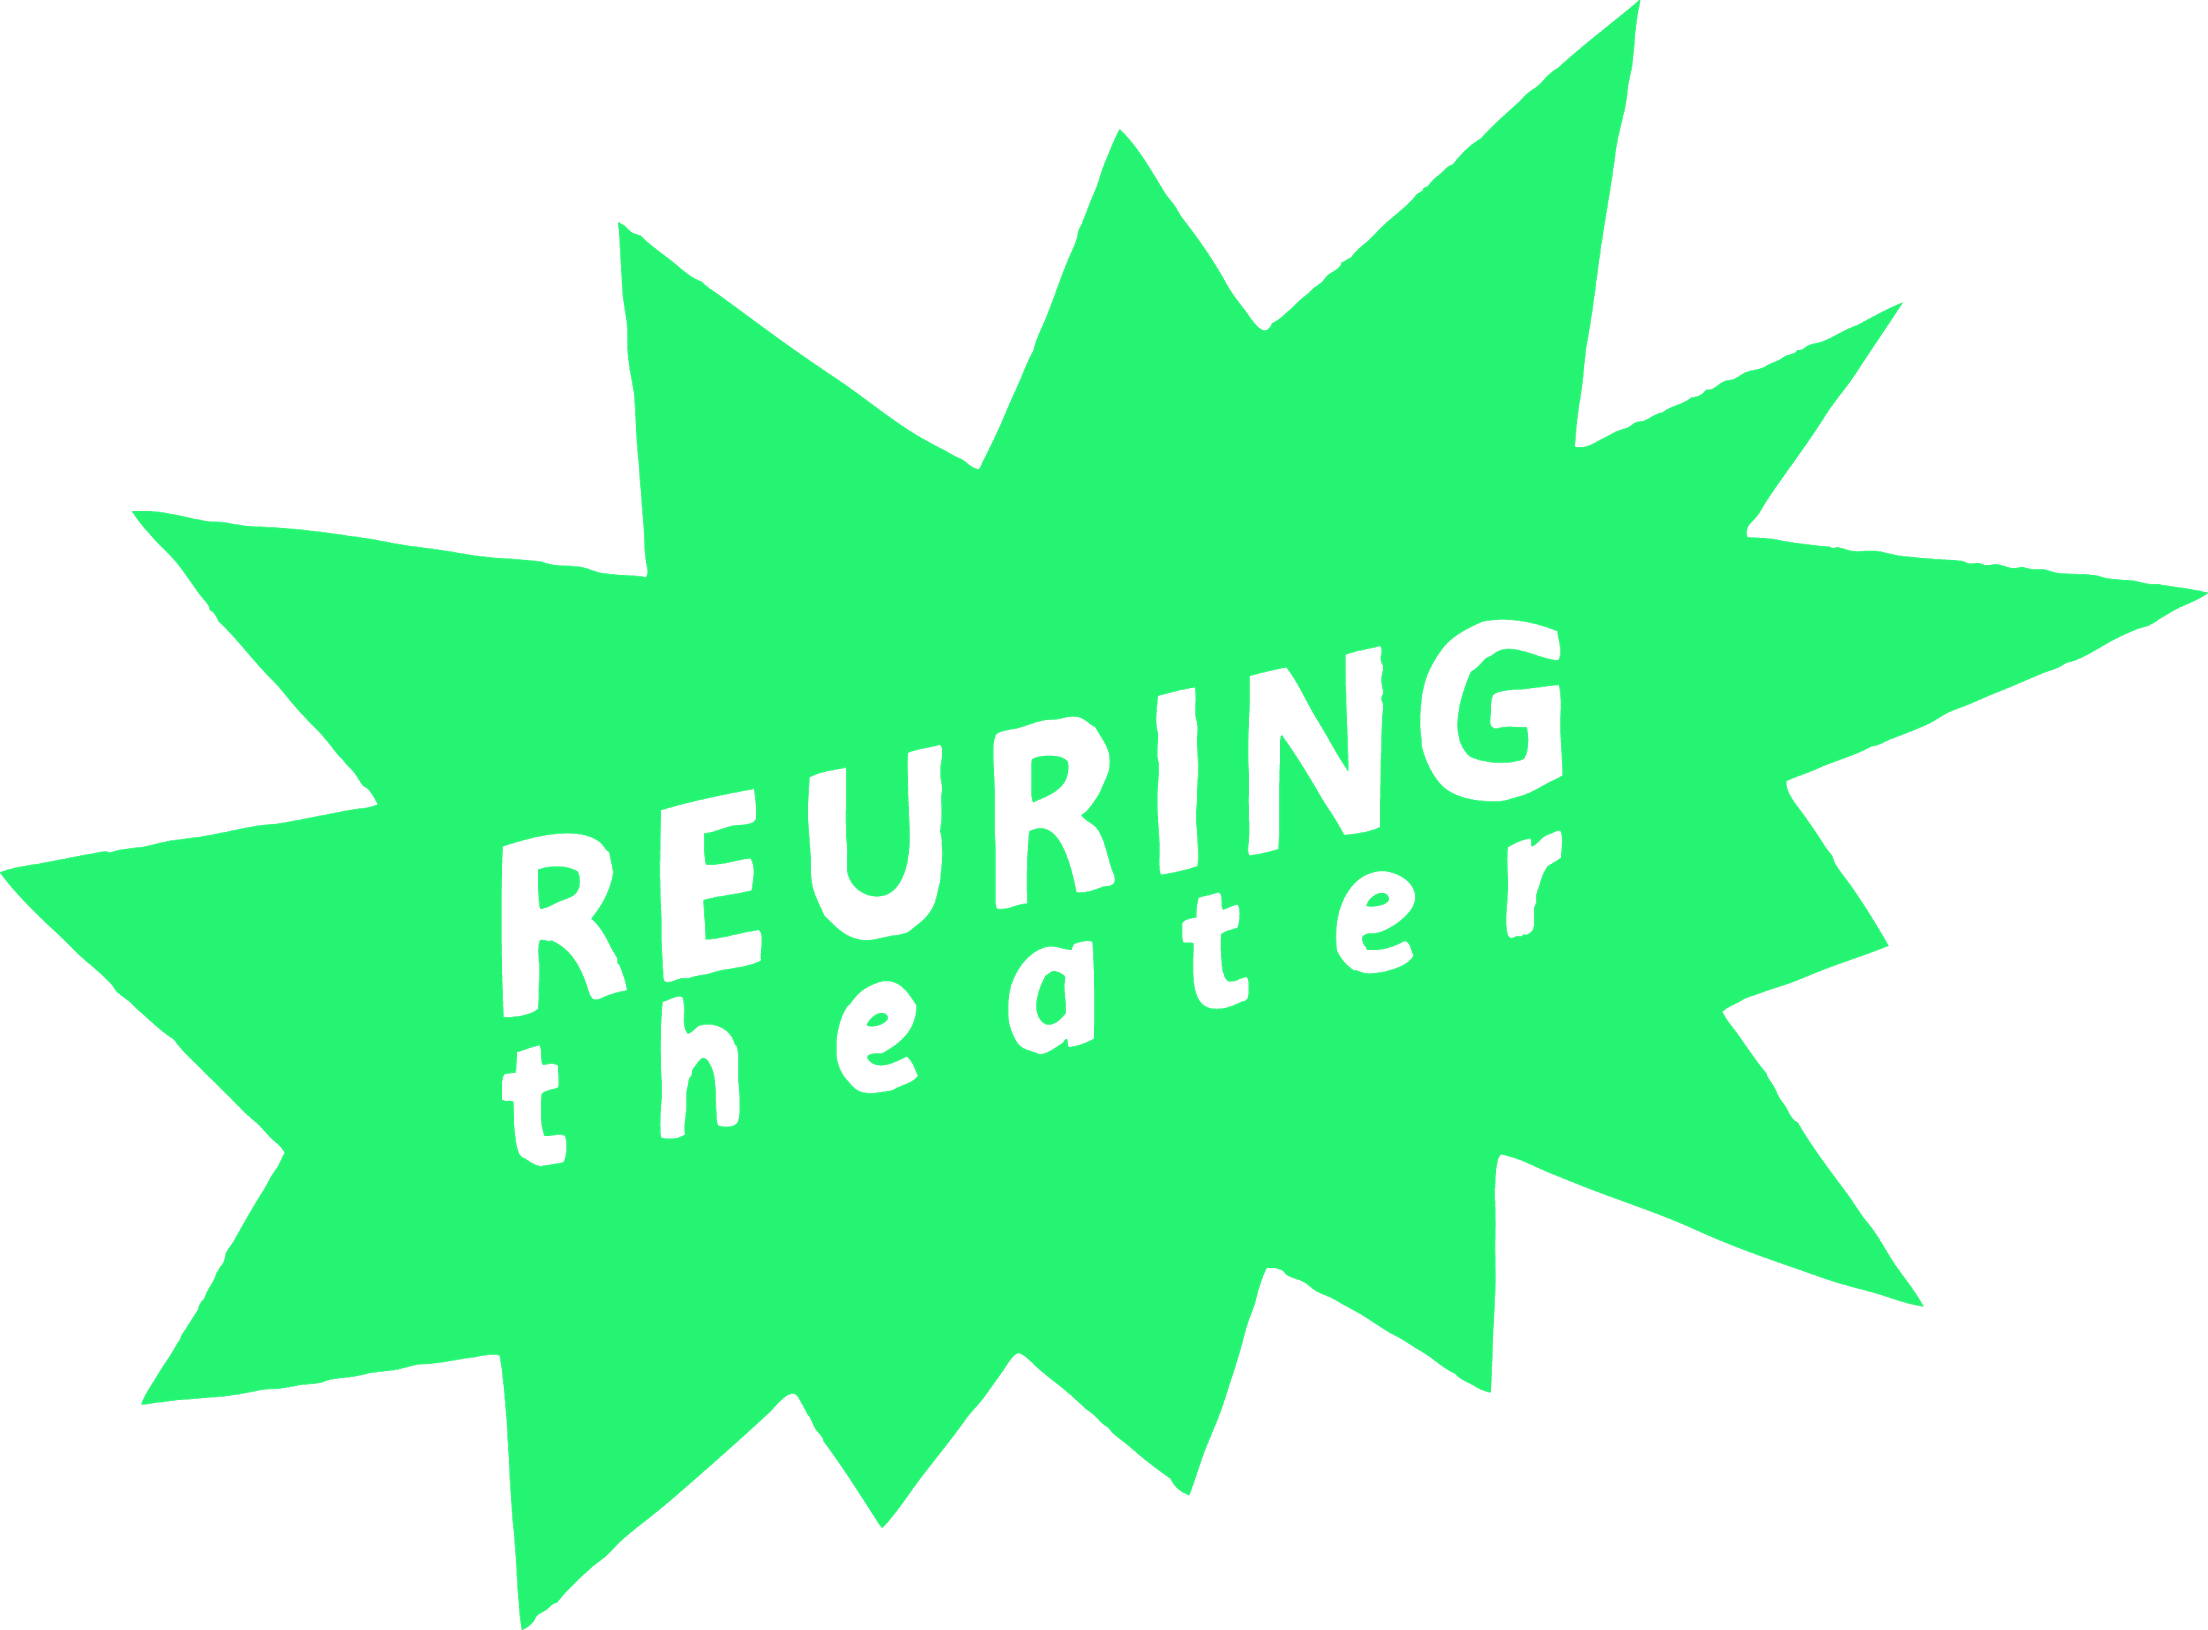 Reuring Theater